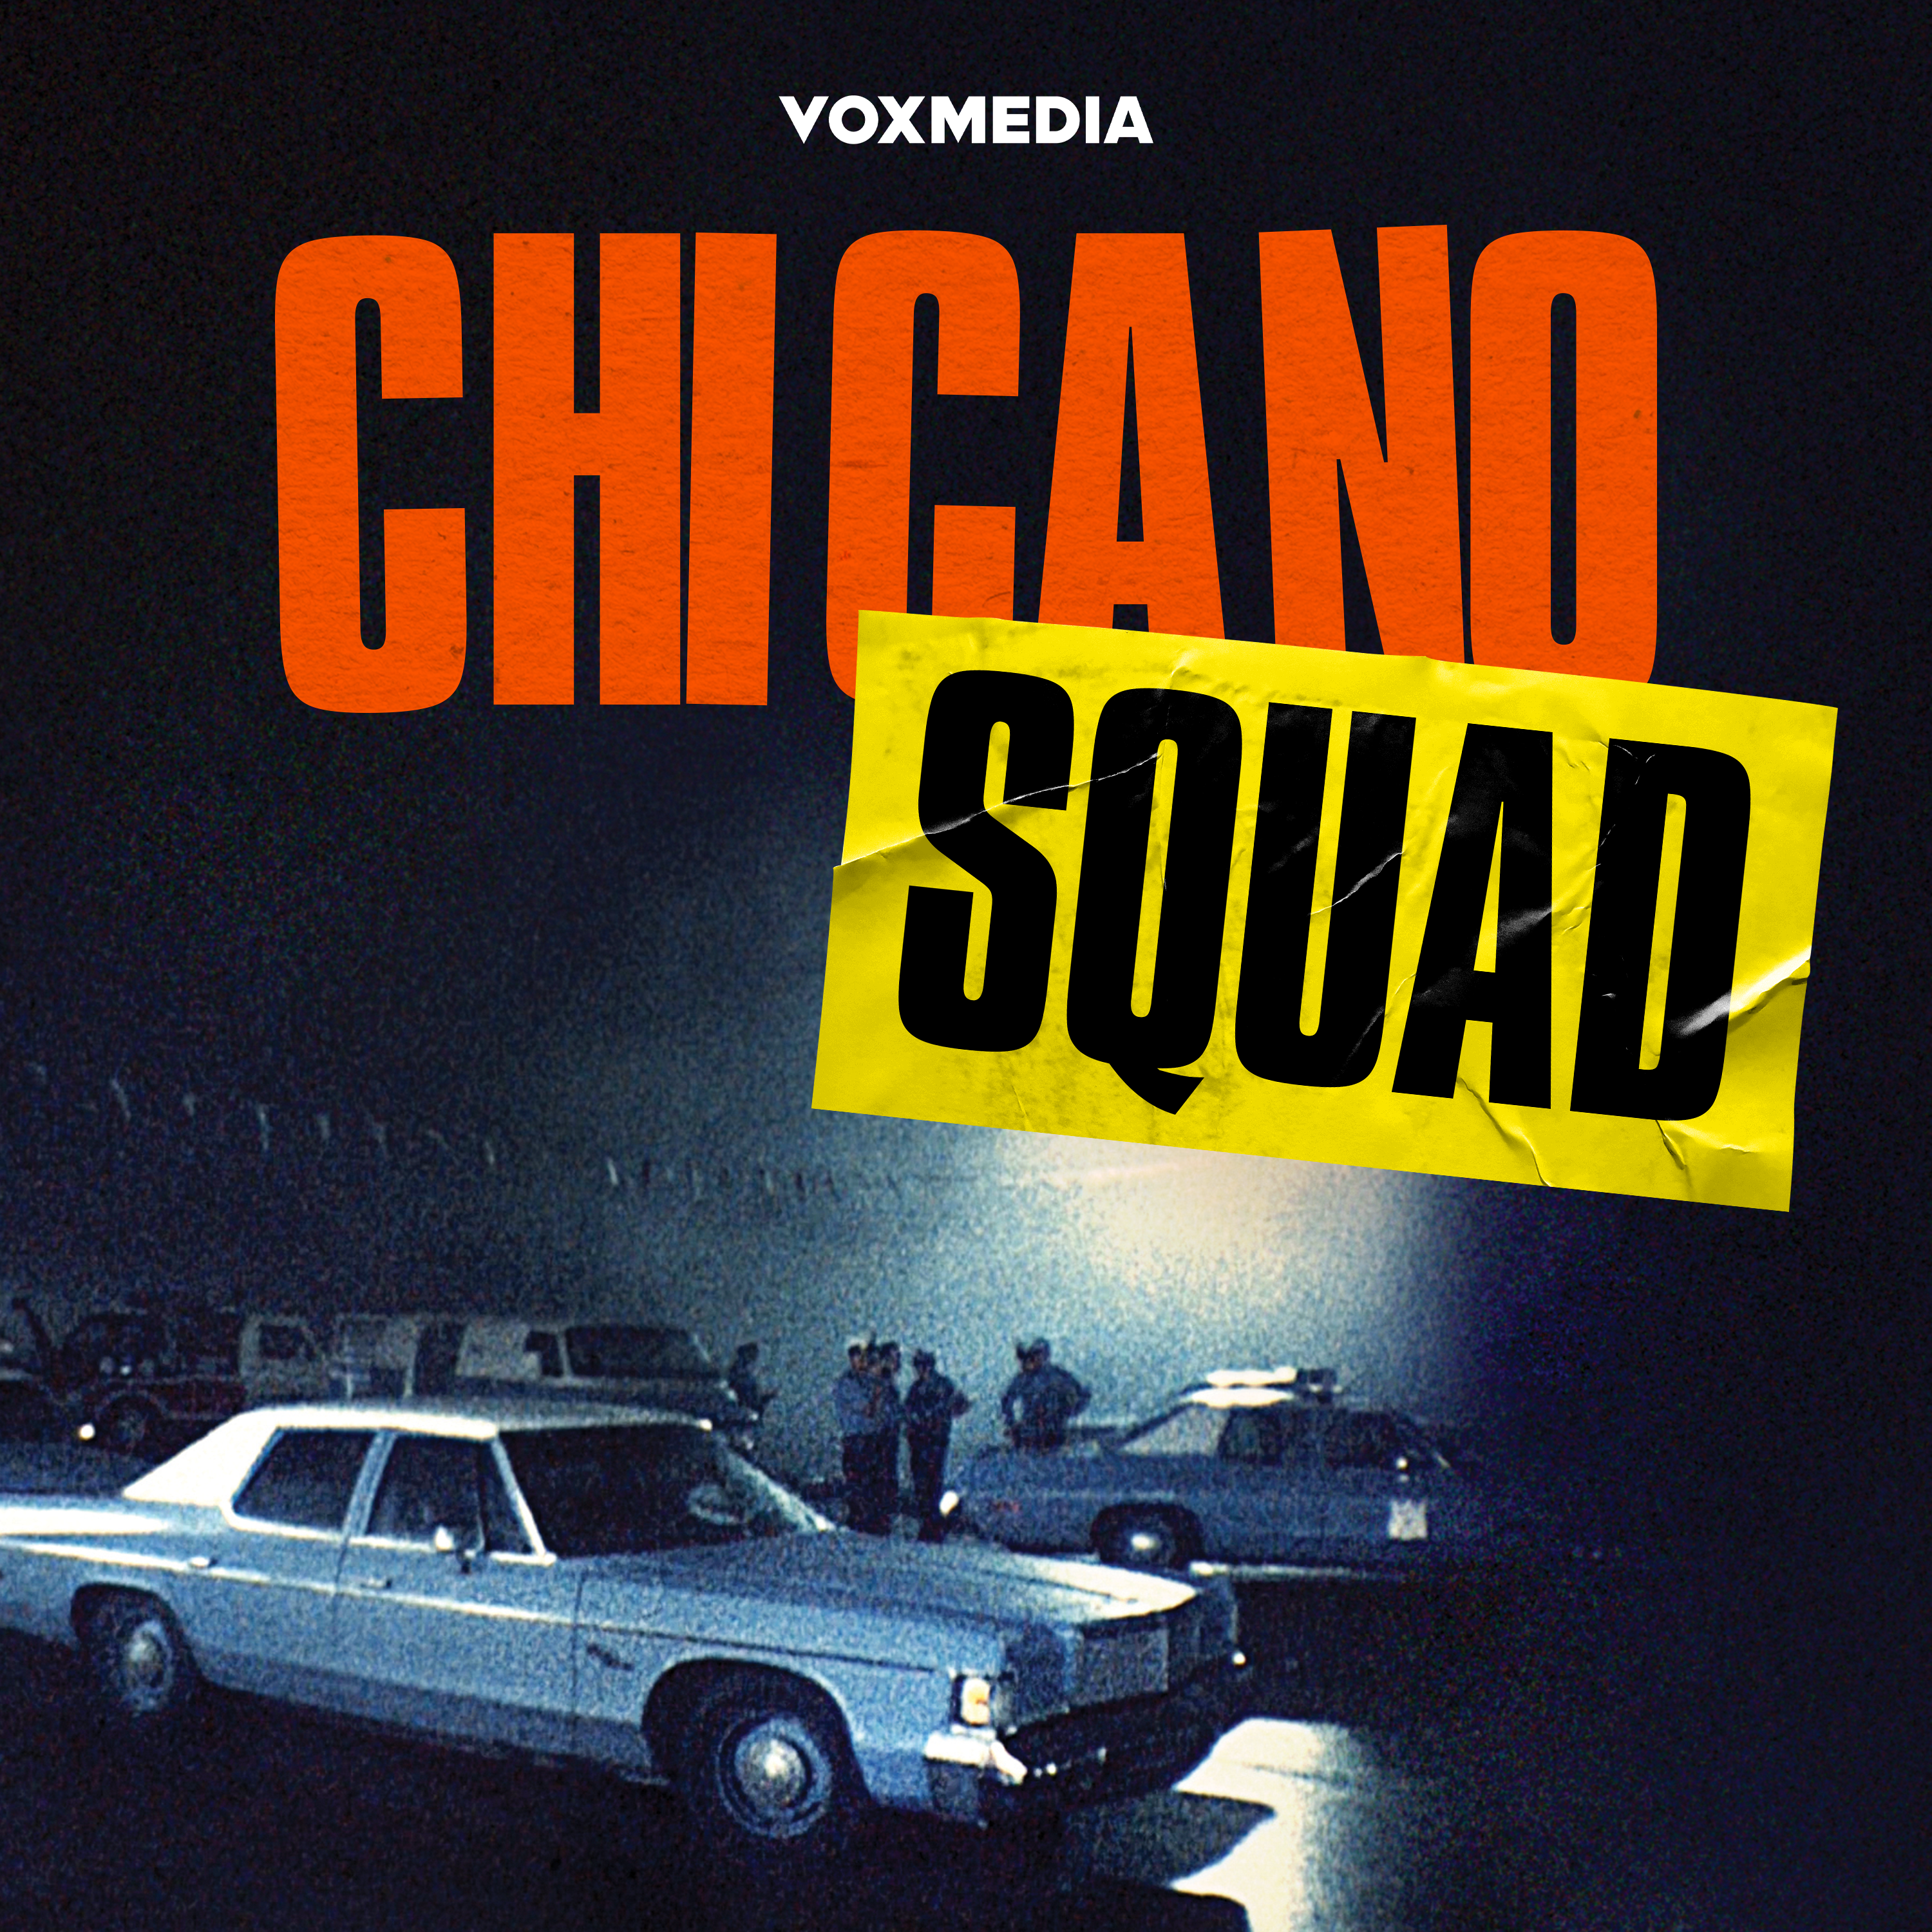 VMPN ChicanoSquad PodcastTile 3000x3000 (2)